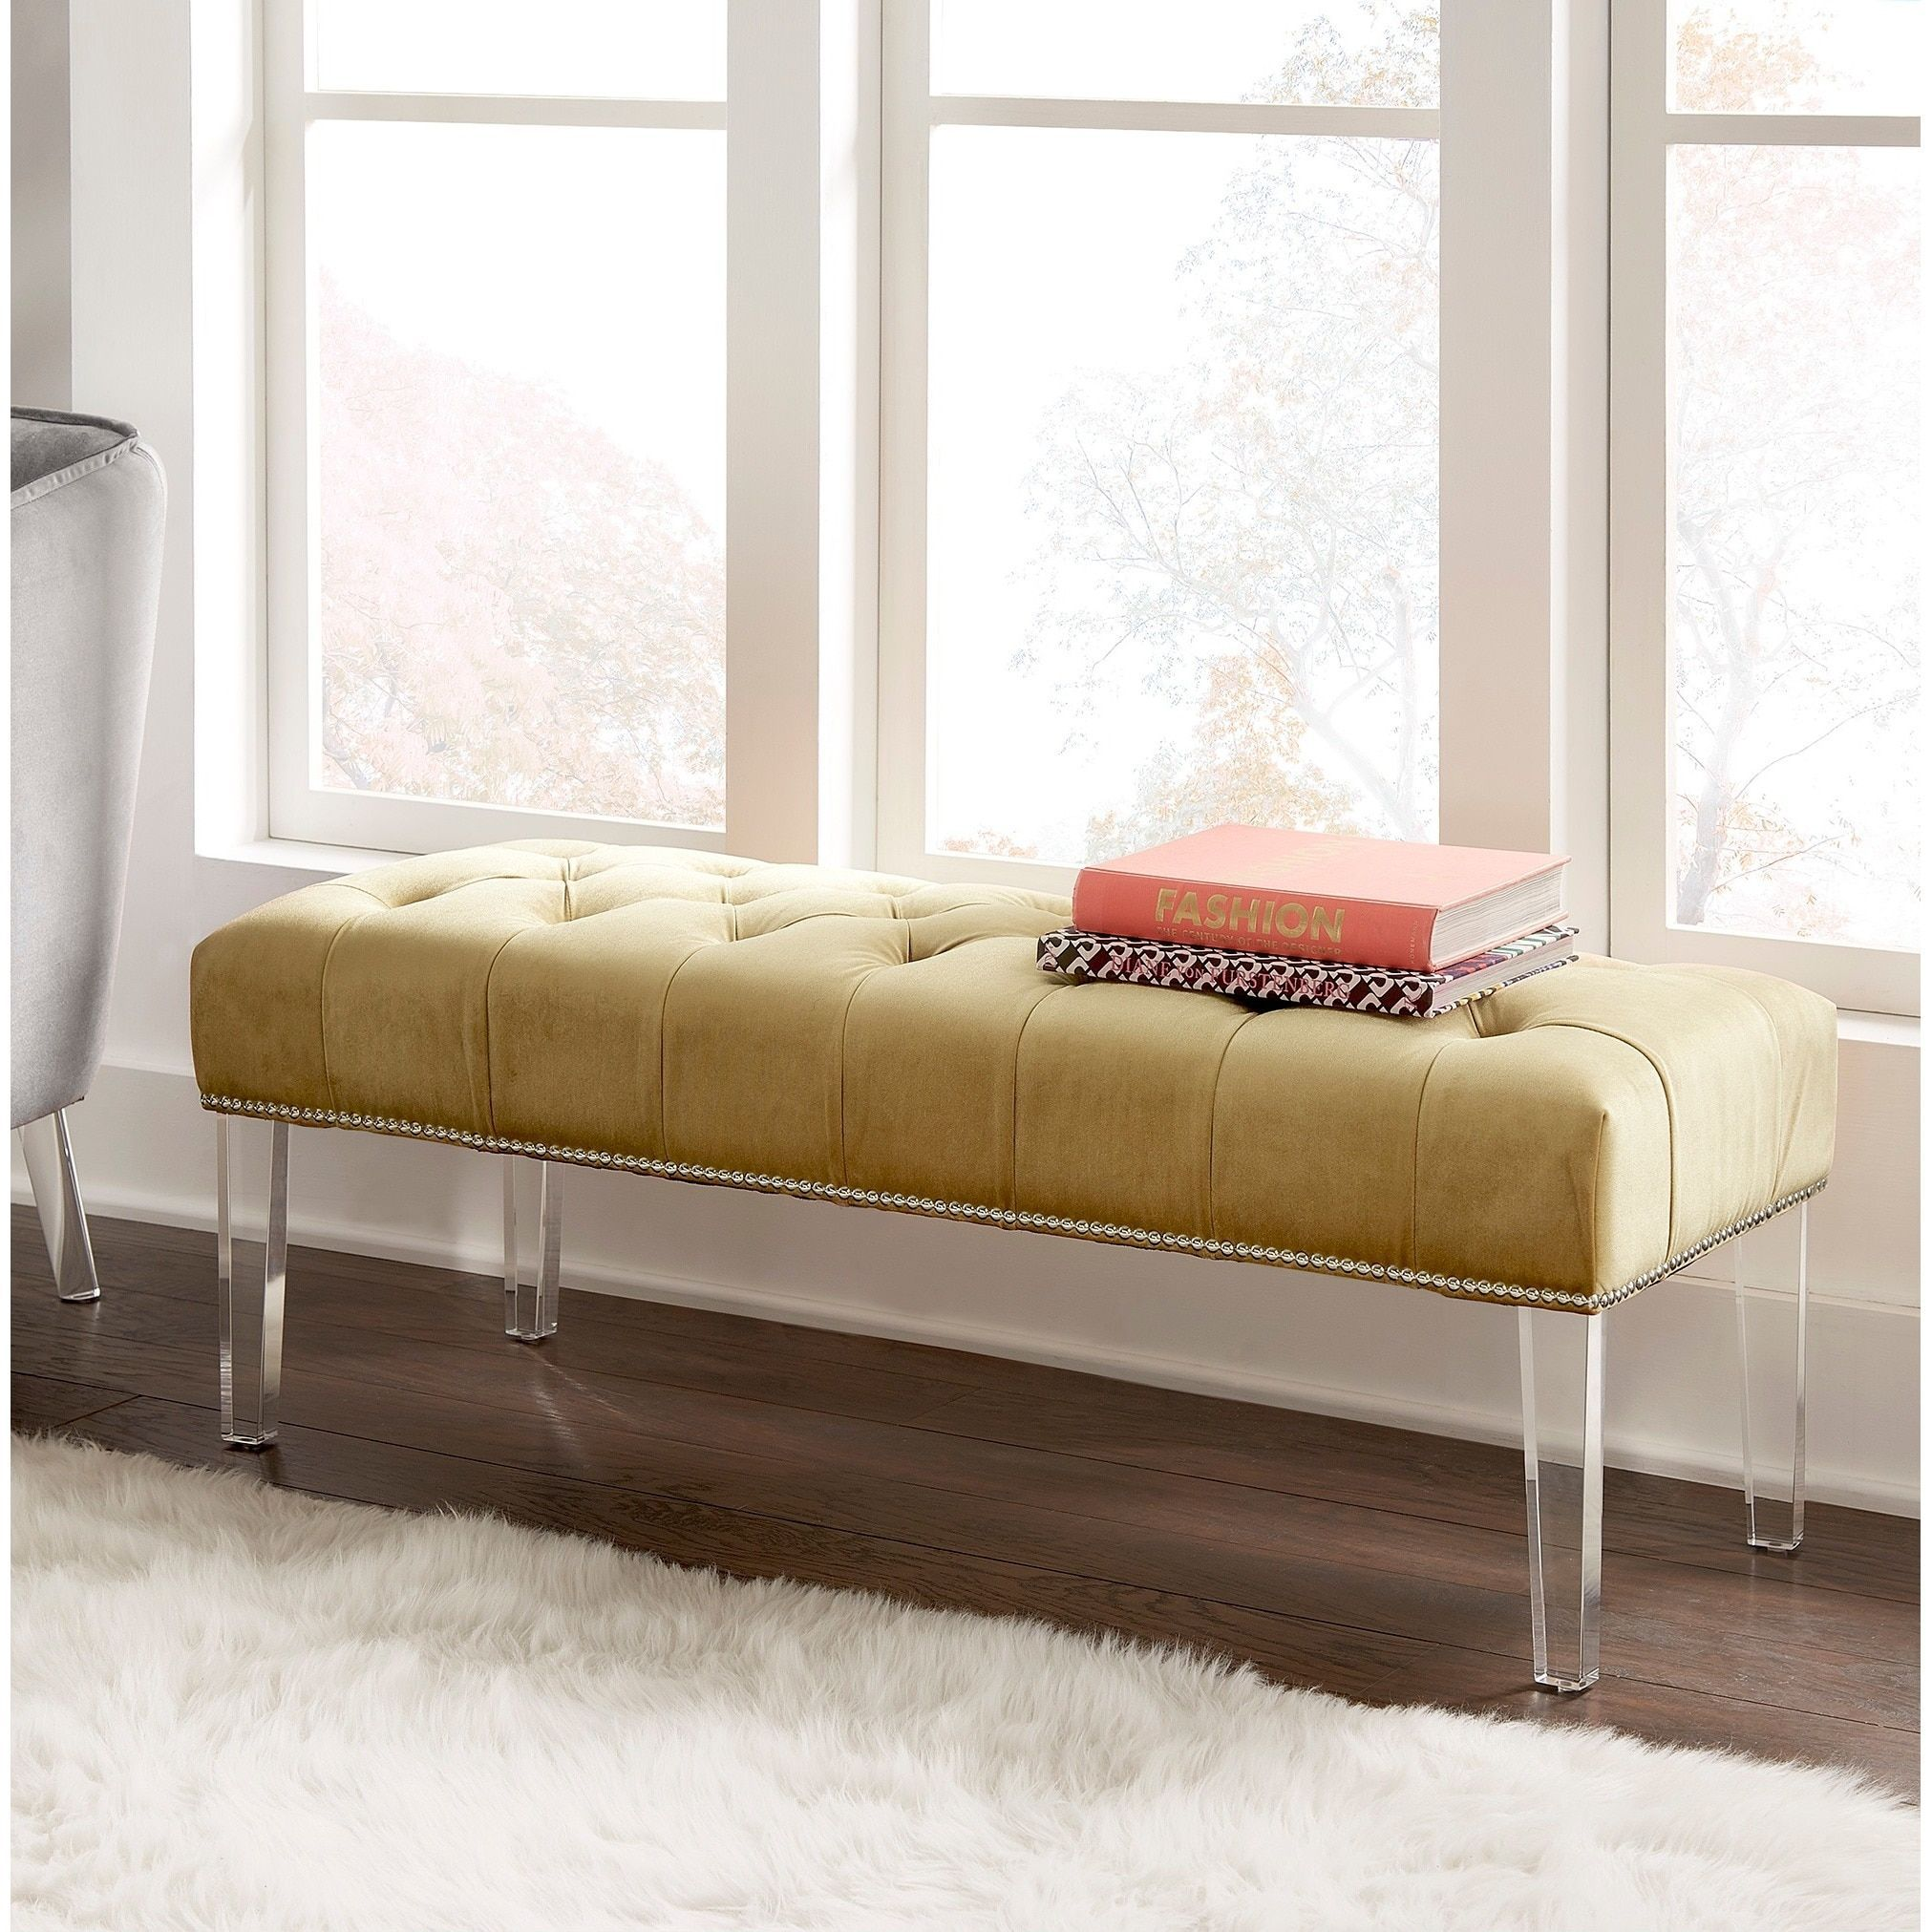 Anya Velvet Nailhead Button Tufted Acrylic Leg Bench by iNSPIRE Q Bold (